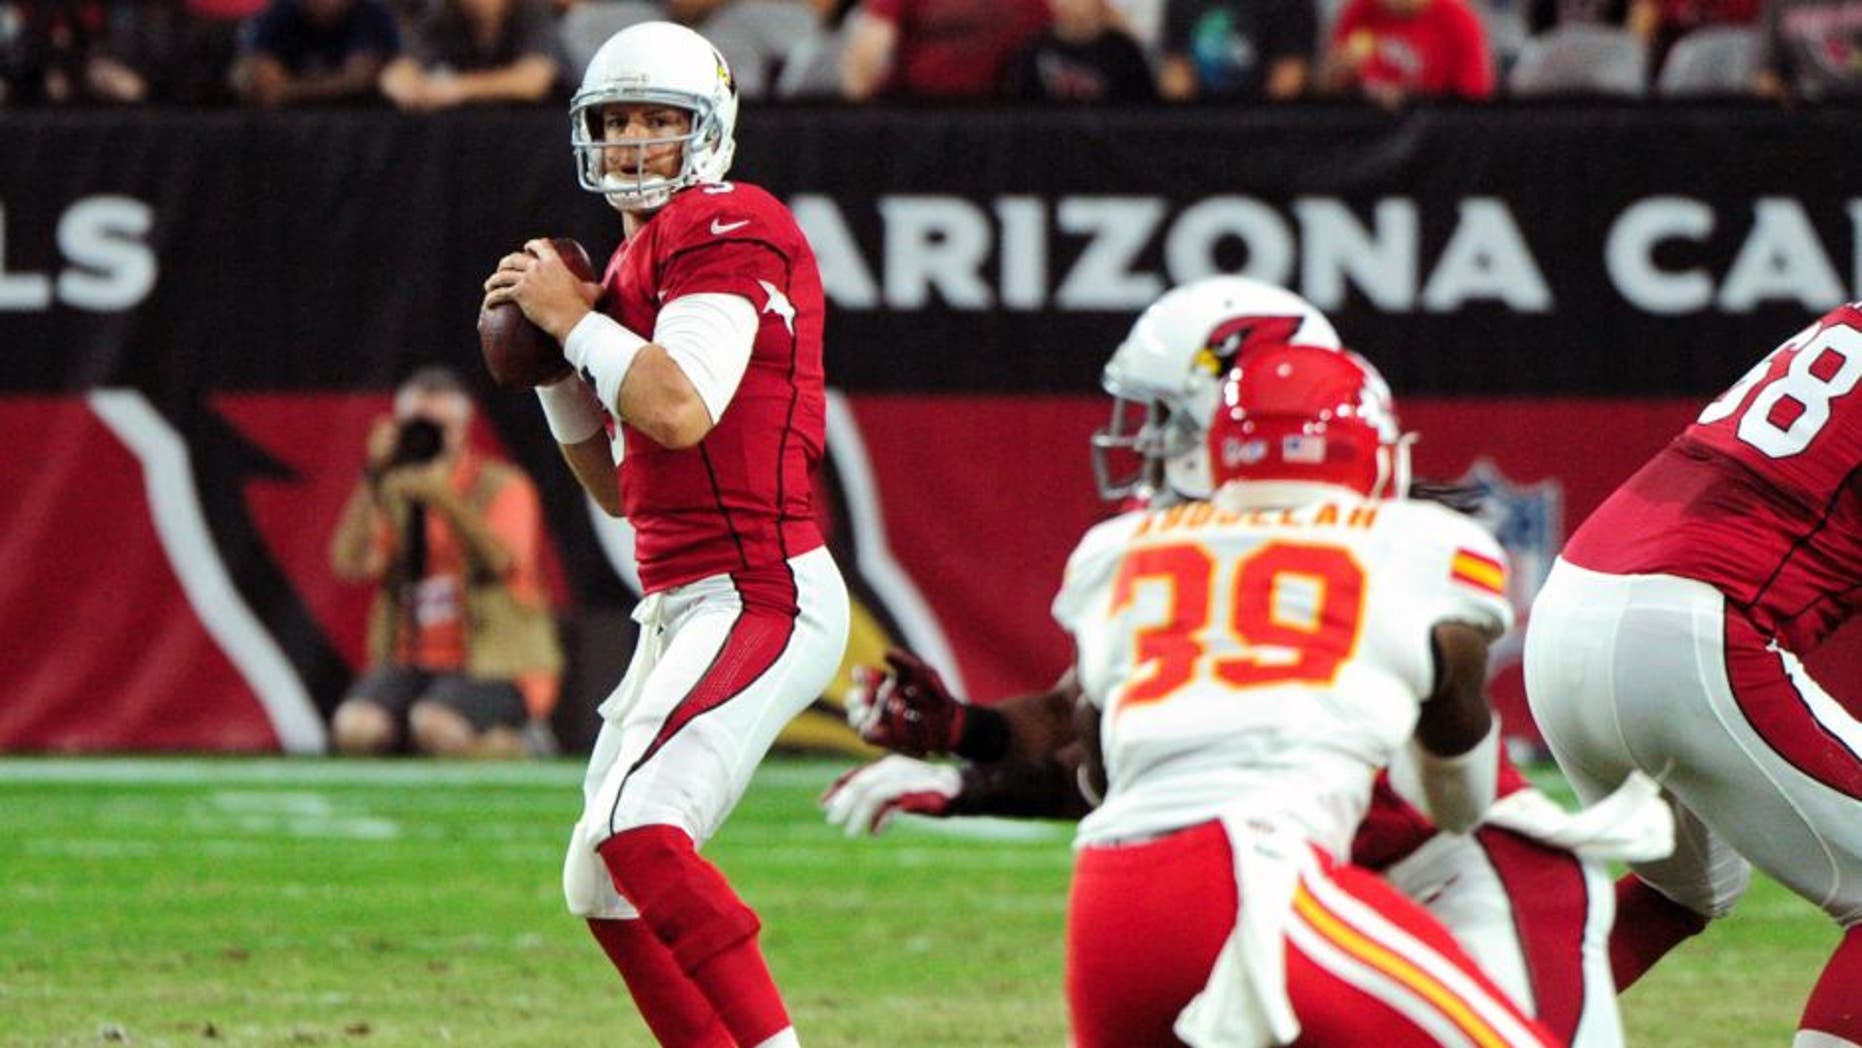 Aug 15, 2015; Glendale, AZ, USA; Arizona Cardinals quarterback Carson Palmer (3) looks to pass during the first half against the Kansas City Chiefs in a preseason NFL football game at University of Phoenix Stadium. Mandatory Credit: Matt Kartozian-USA TODAY Sports